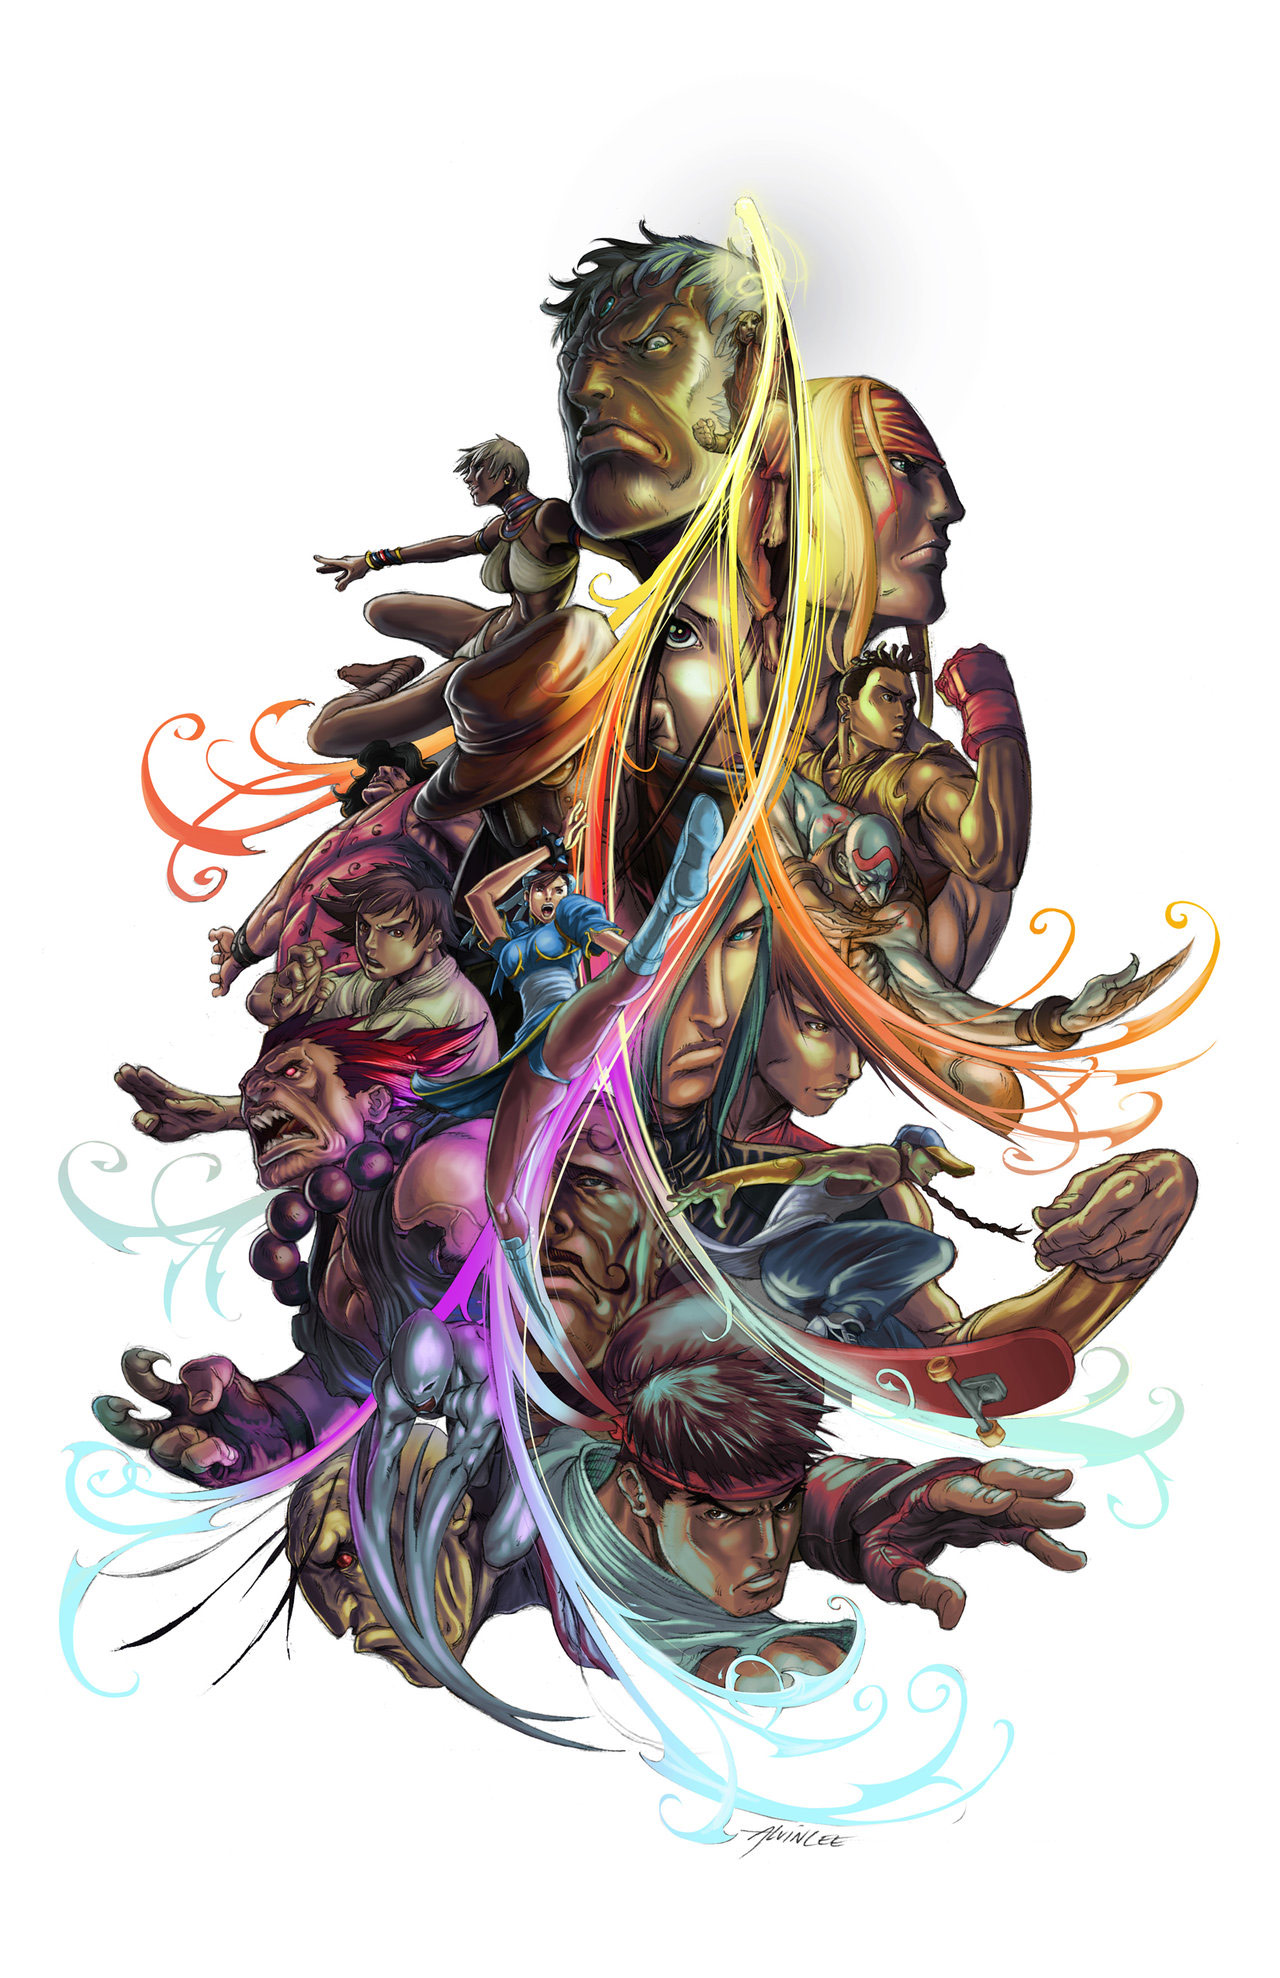 Fighting game related artwork image #8